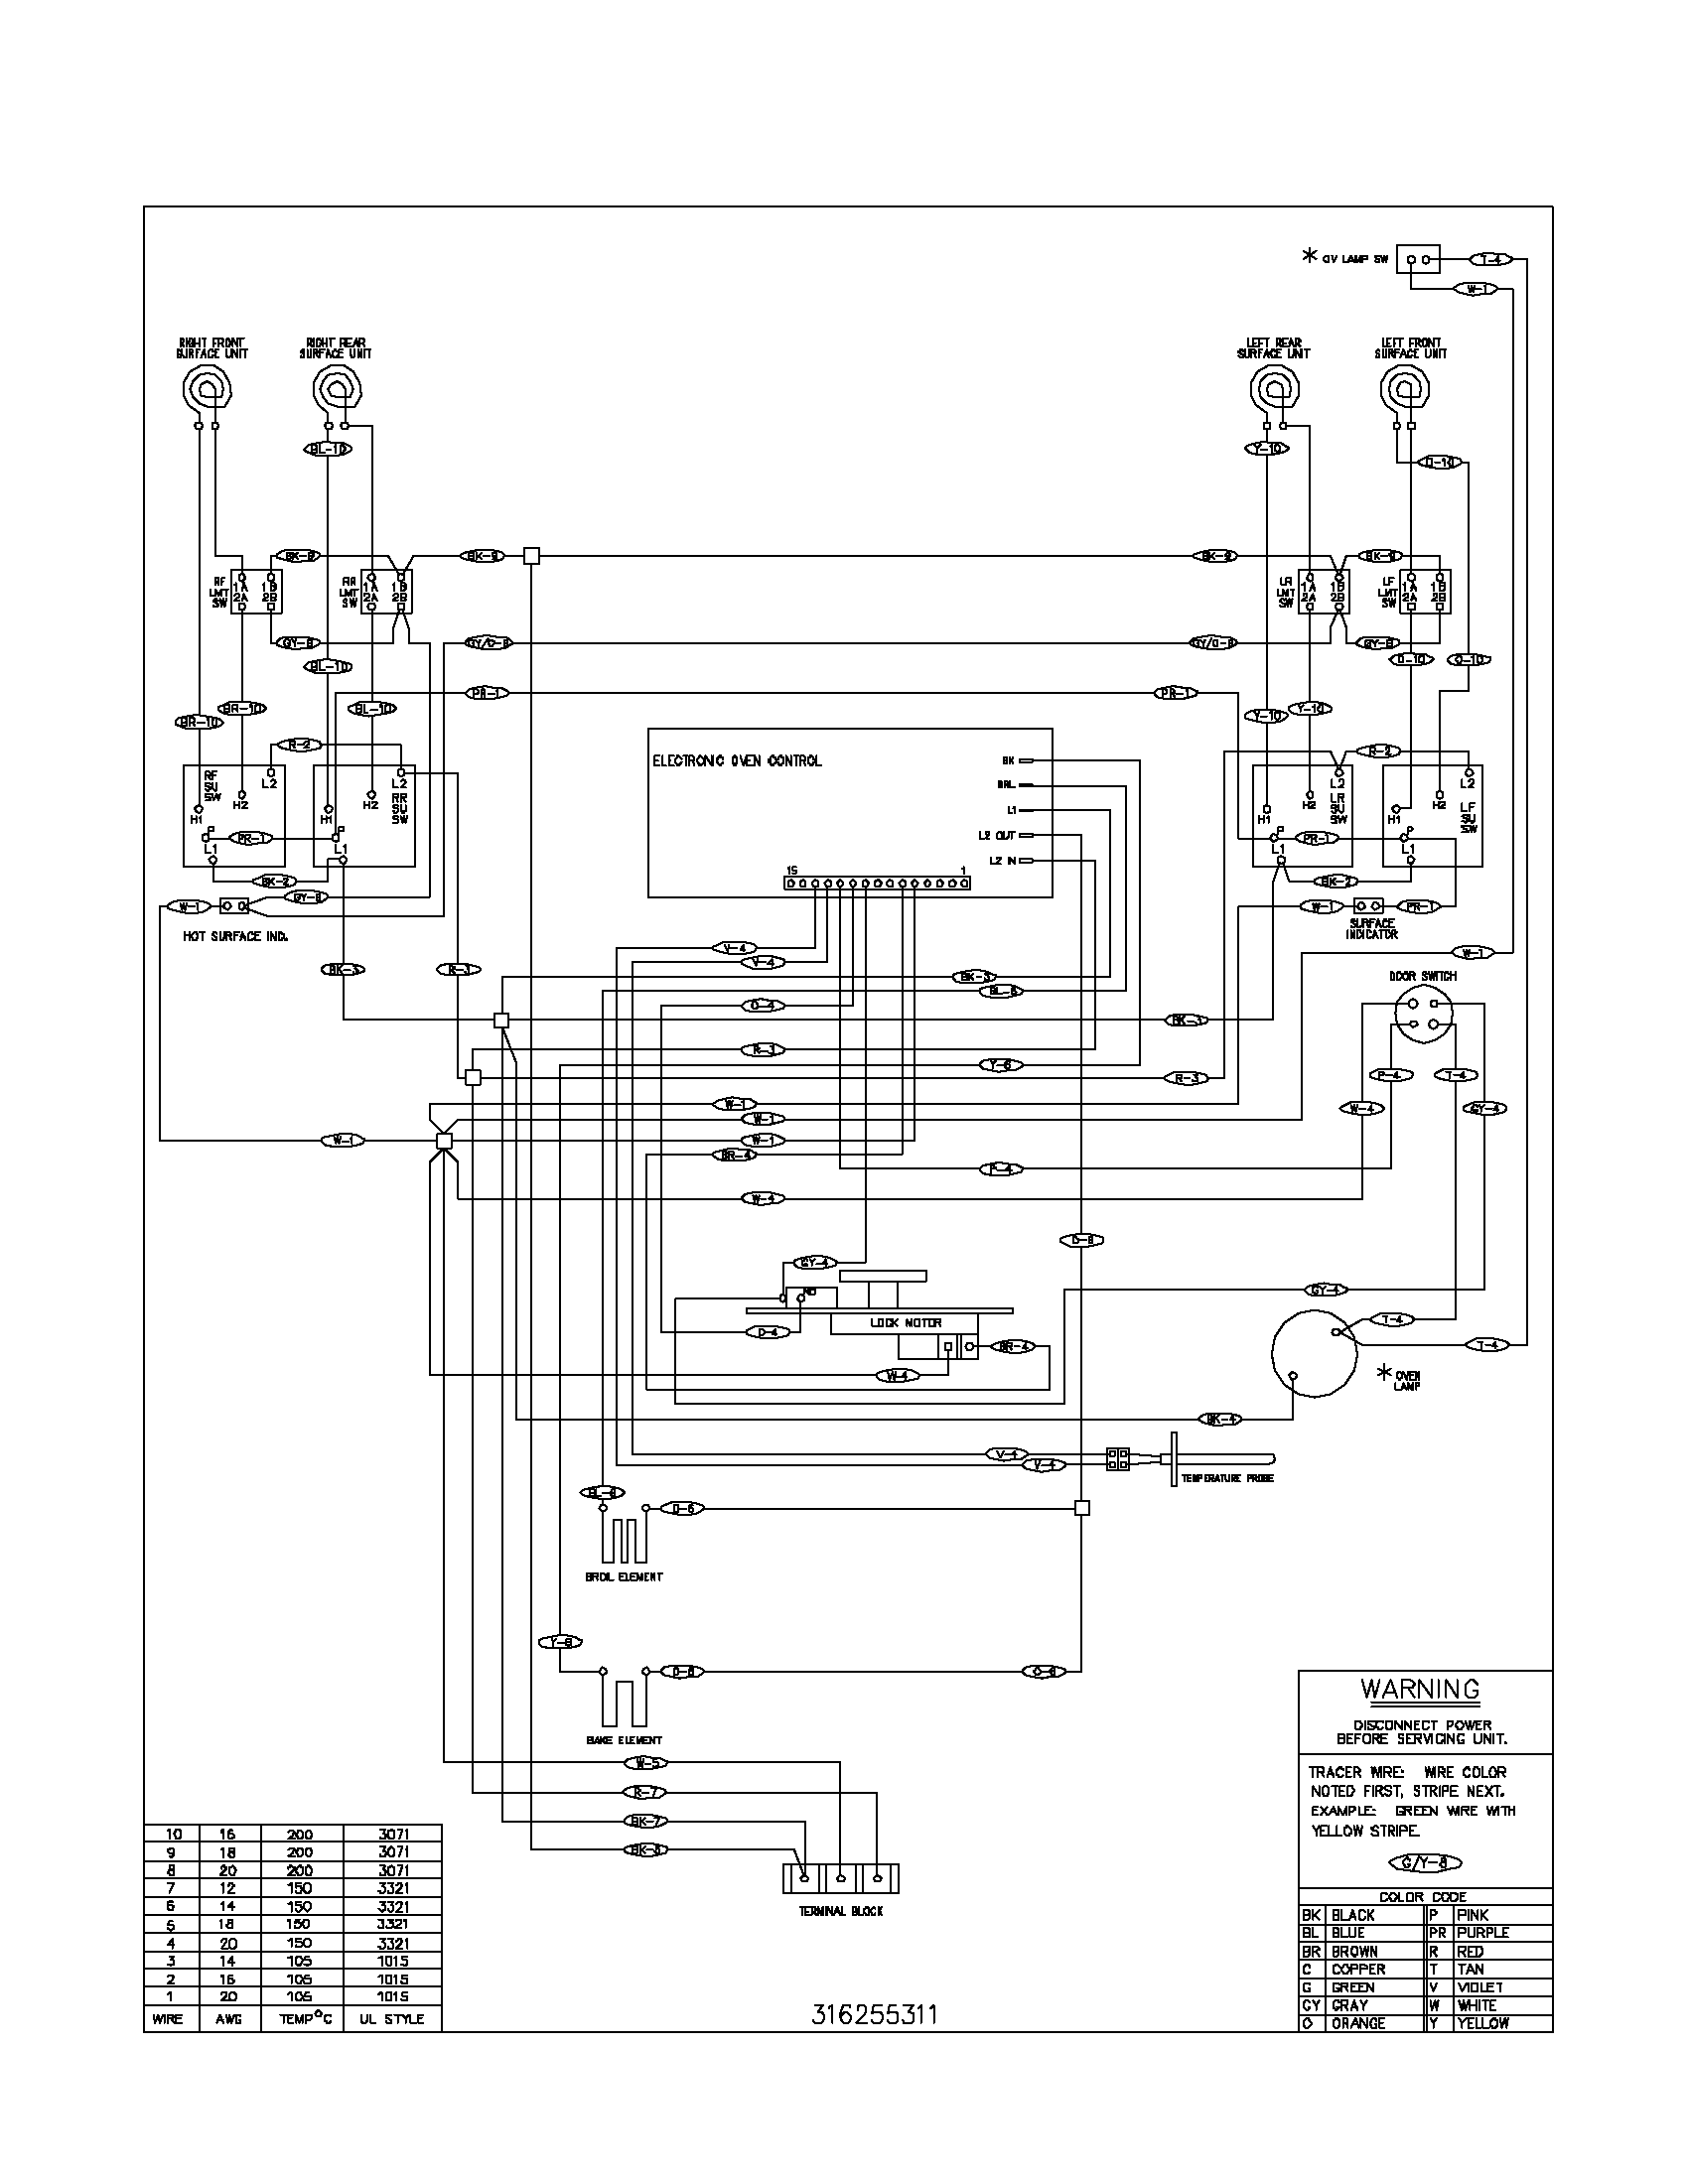 wiring diagram parts frigidaire stove wiring diagram frigidaire washer wiring diagram electric hot plate wiring diagram at alyssarenee.co